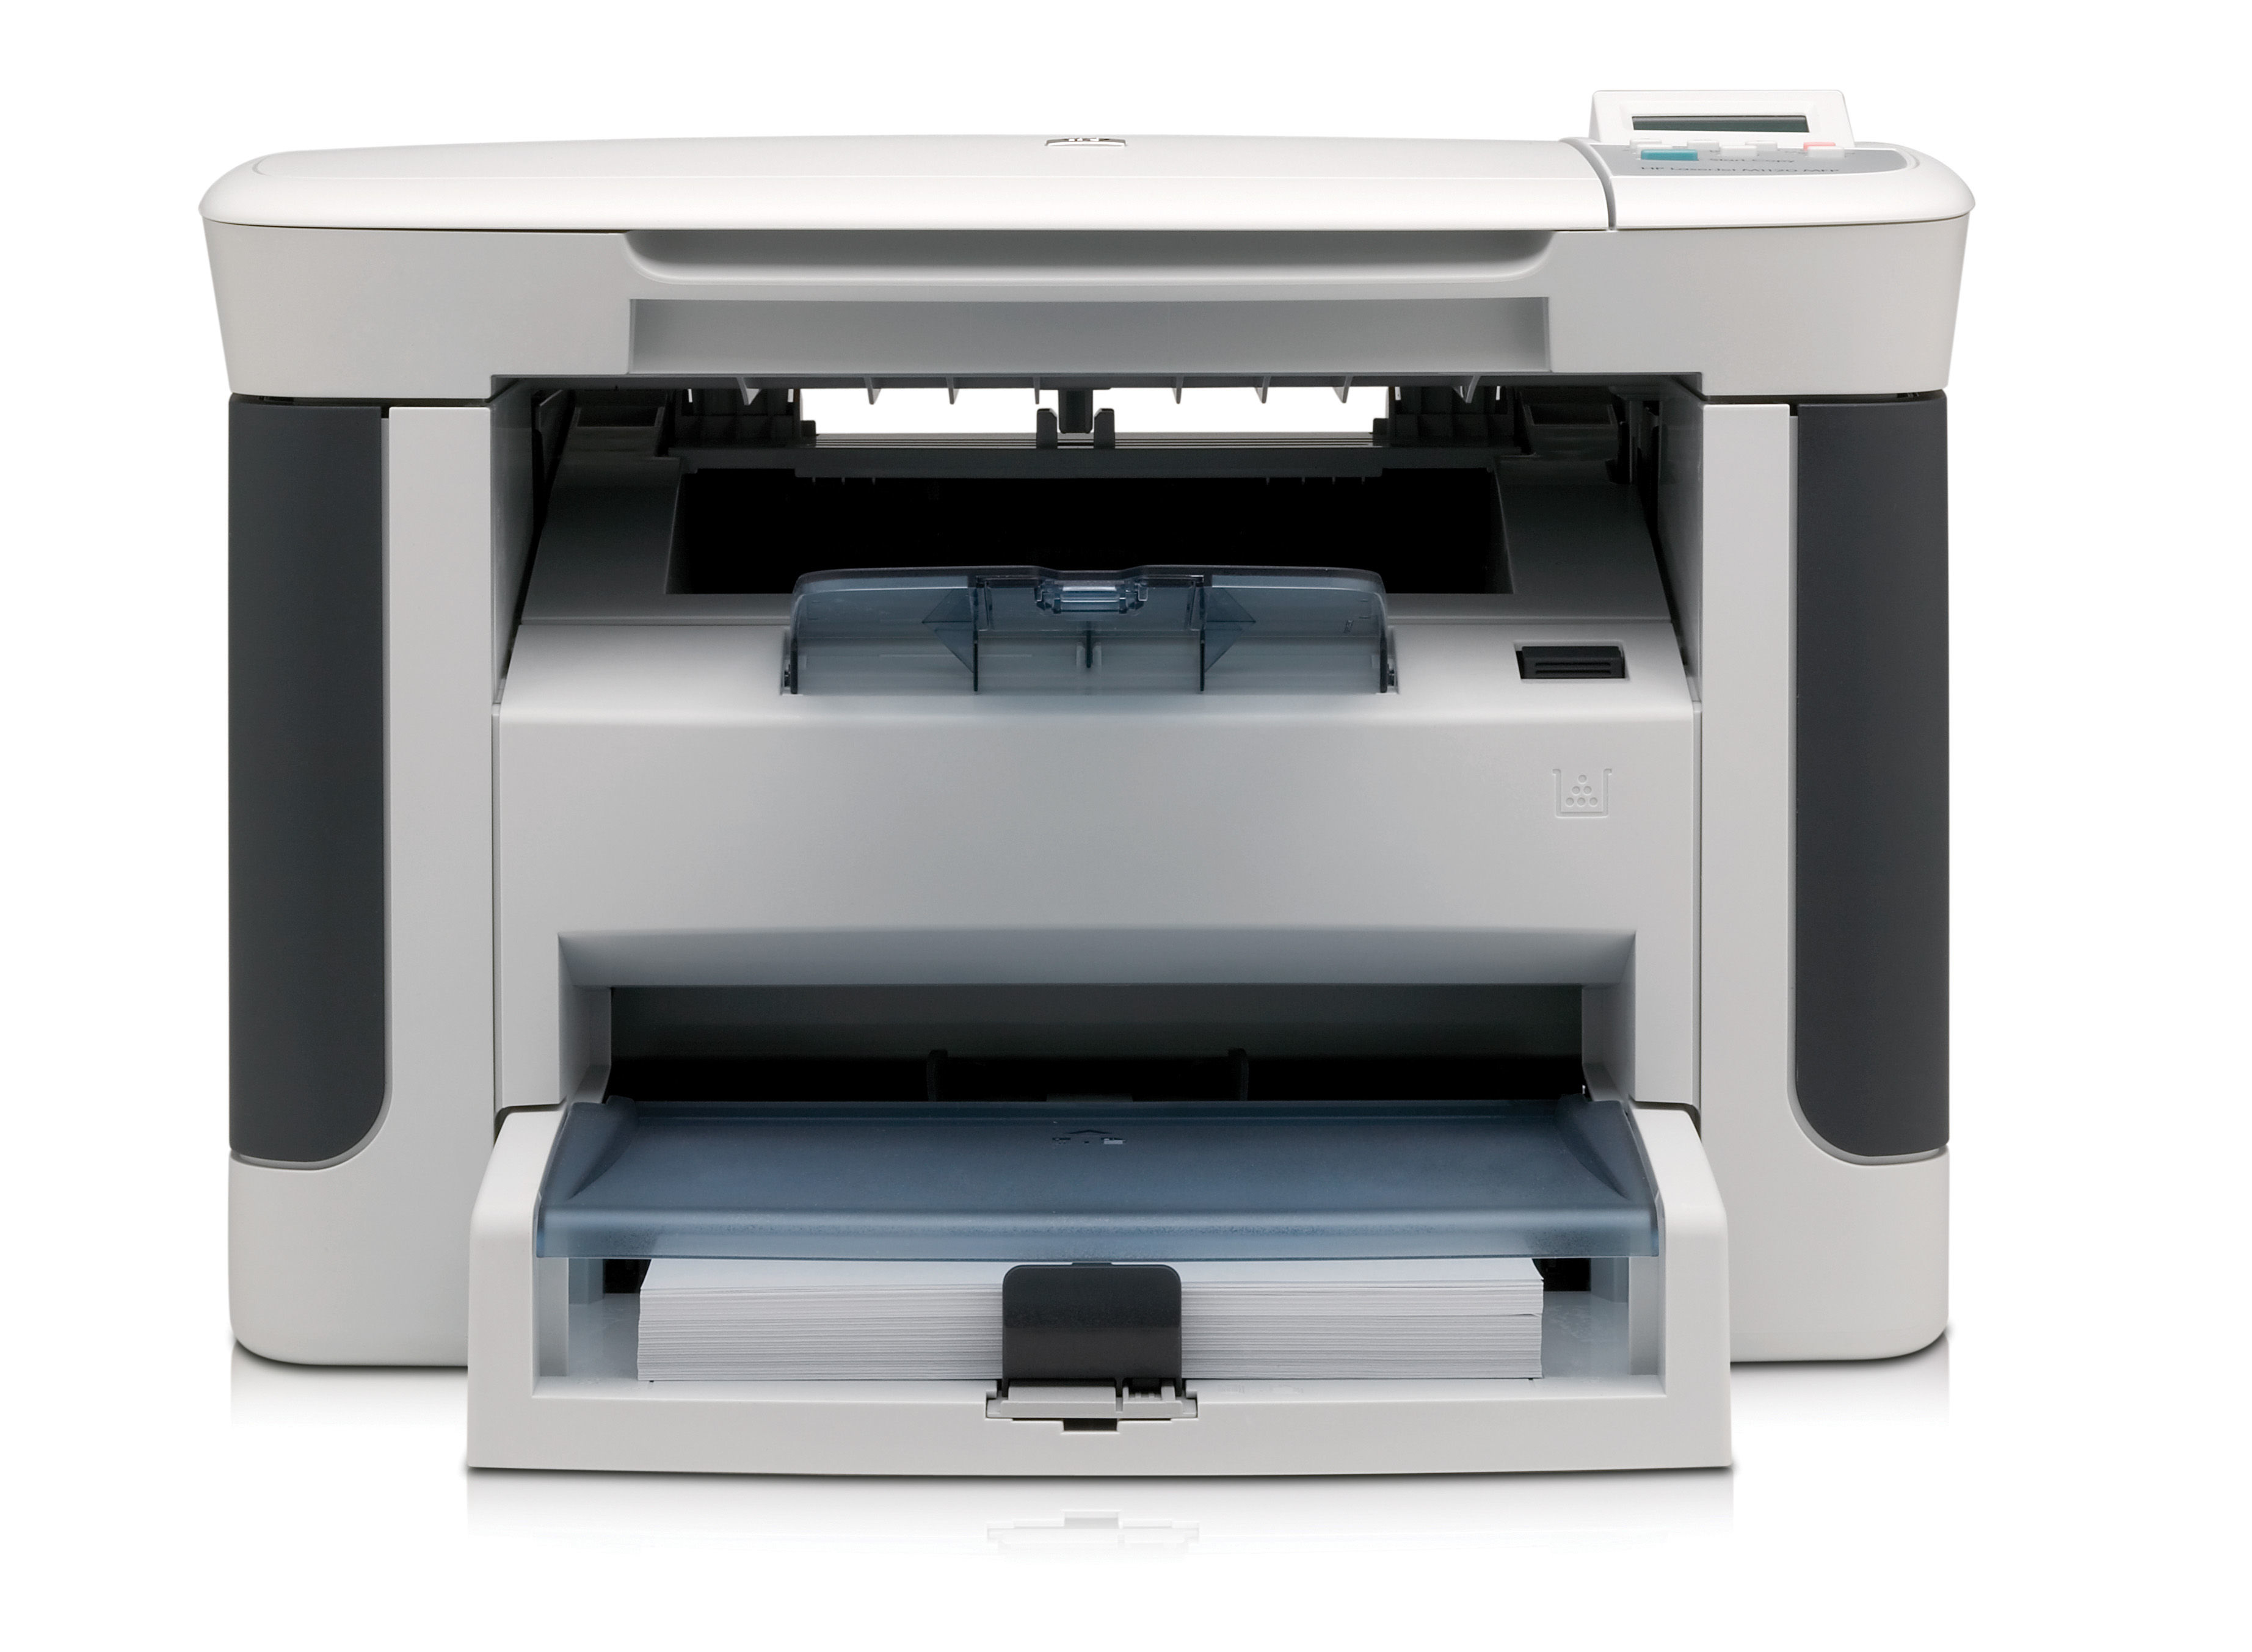 HP LaserJet M1120n MFP A4 All in one Printer CC459A#ABU - Refurbished